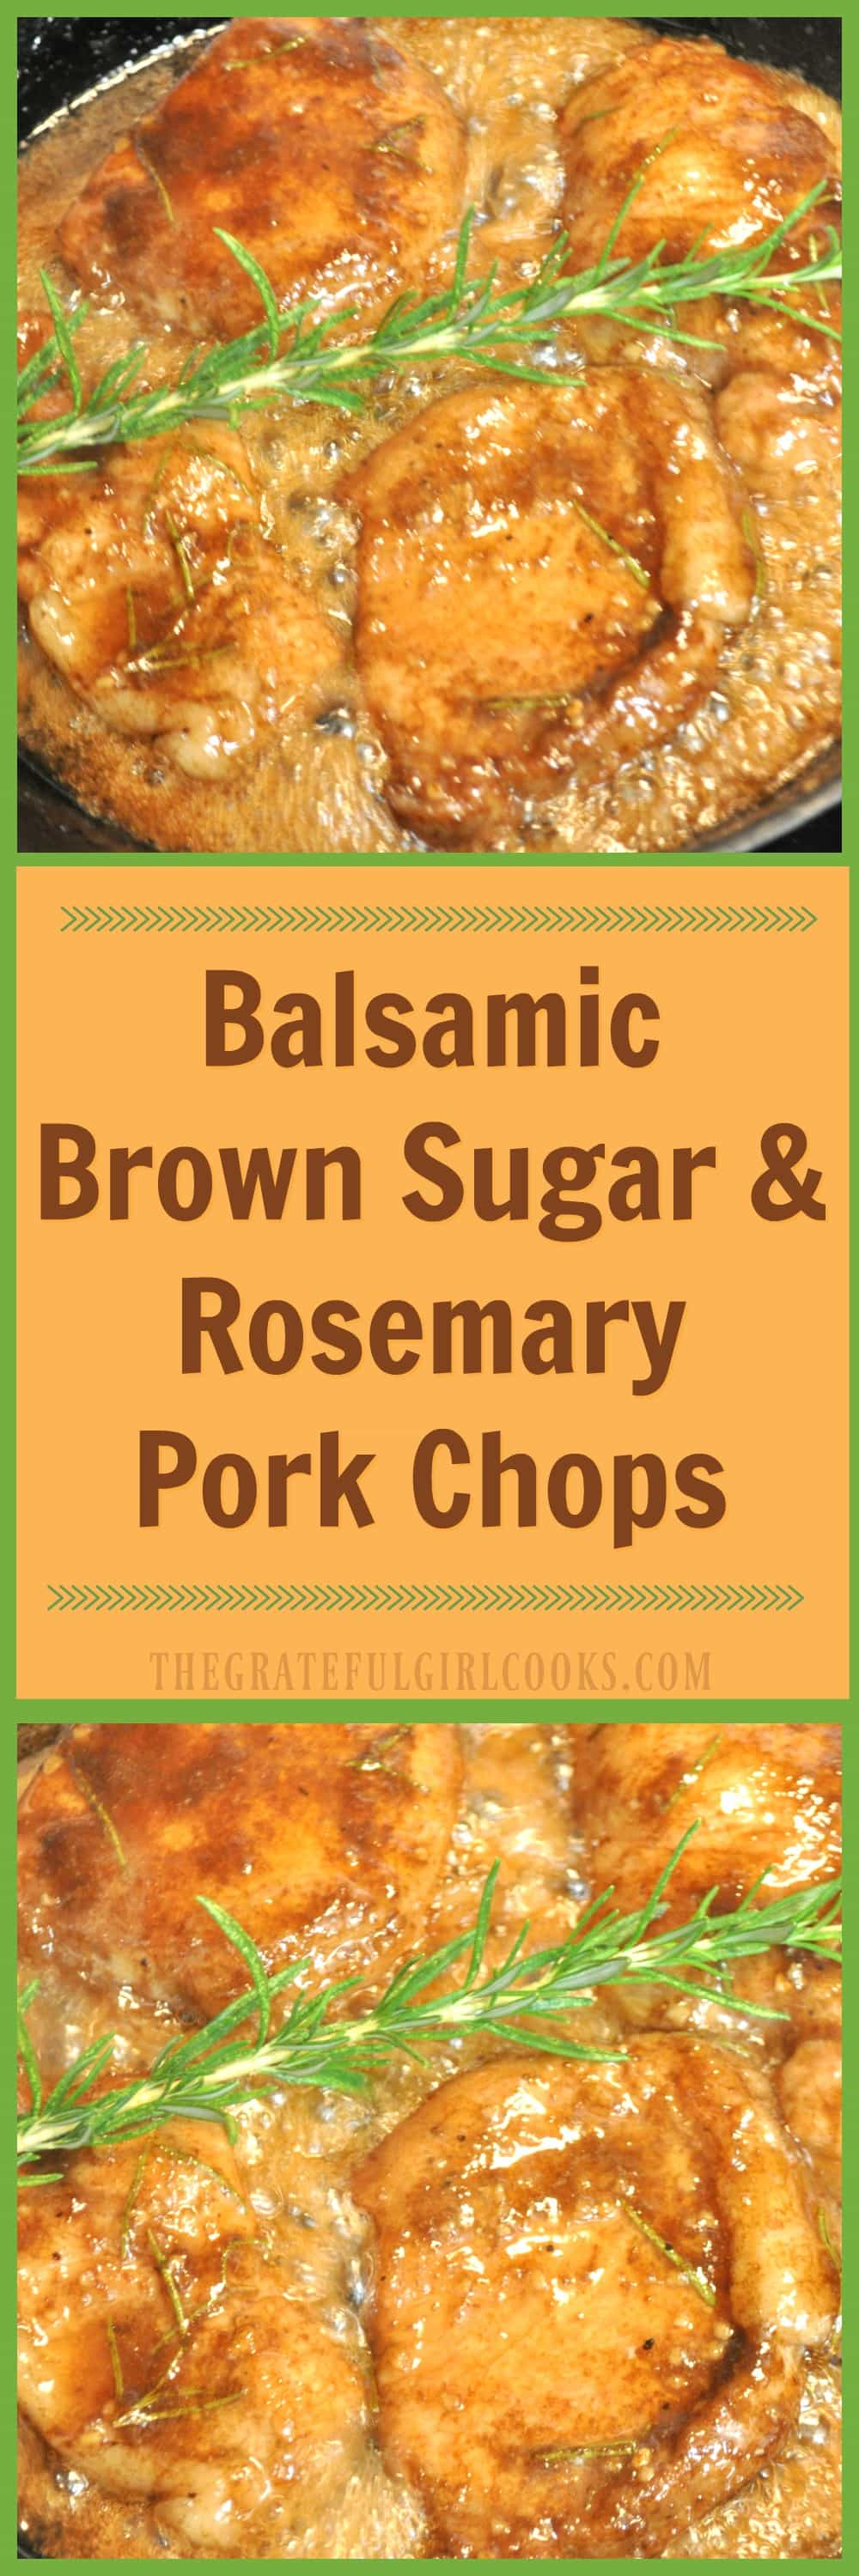 Balsamic Brown Sugar & Rosemary Pork Chops / The Grateful Girl Cooks!